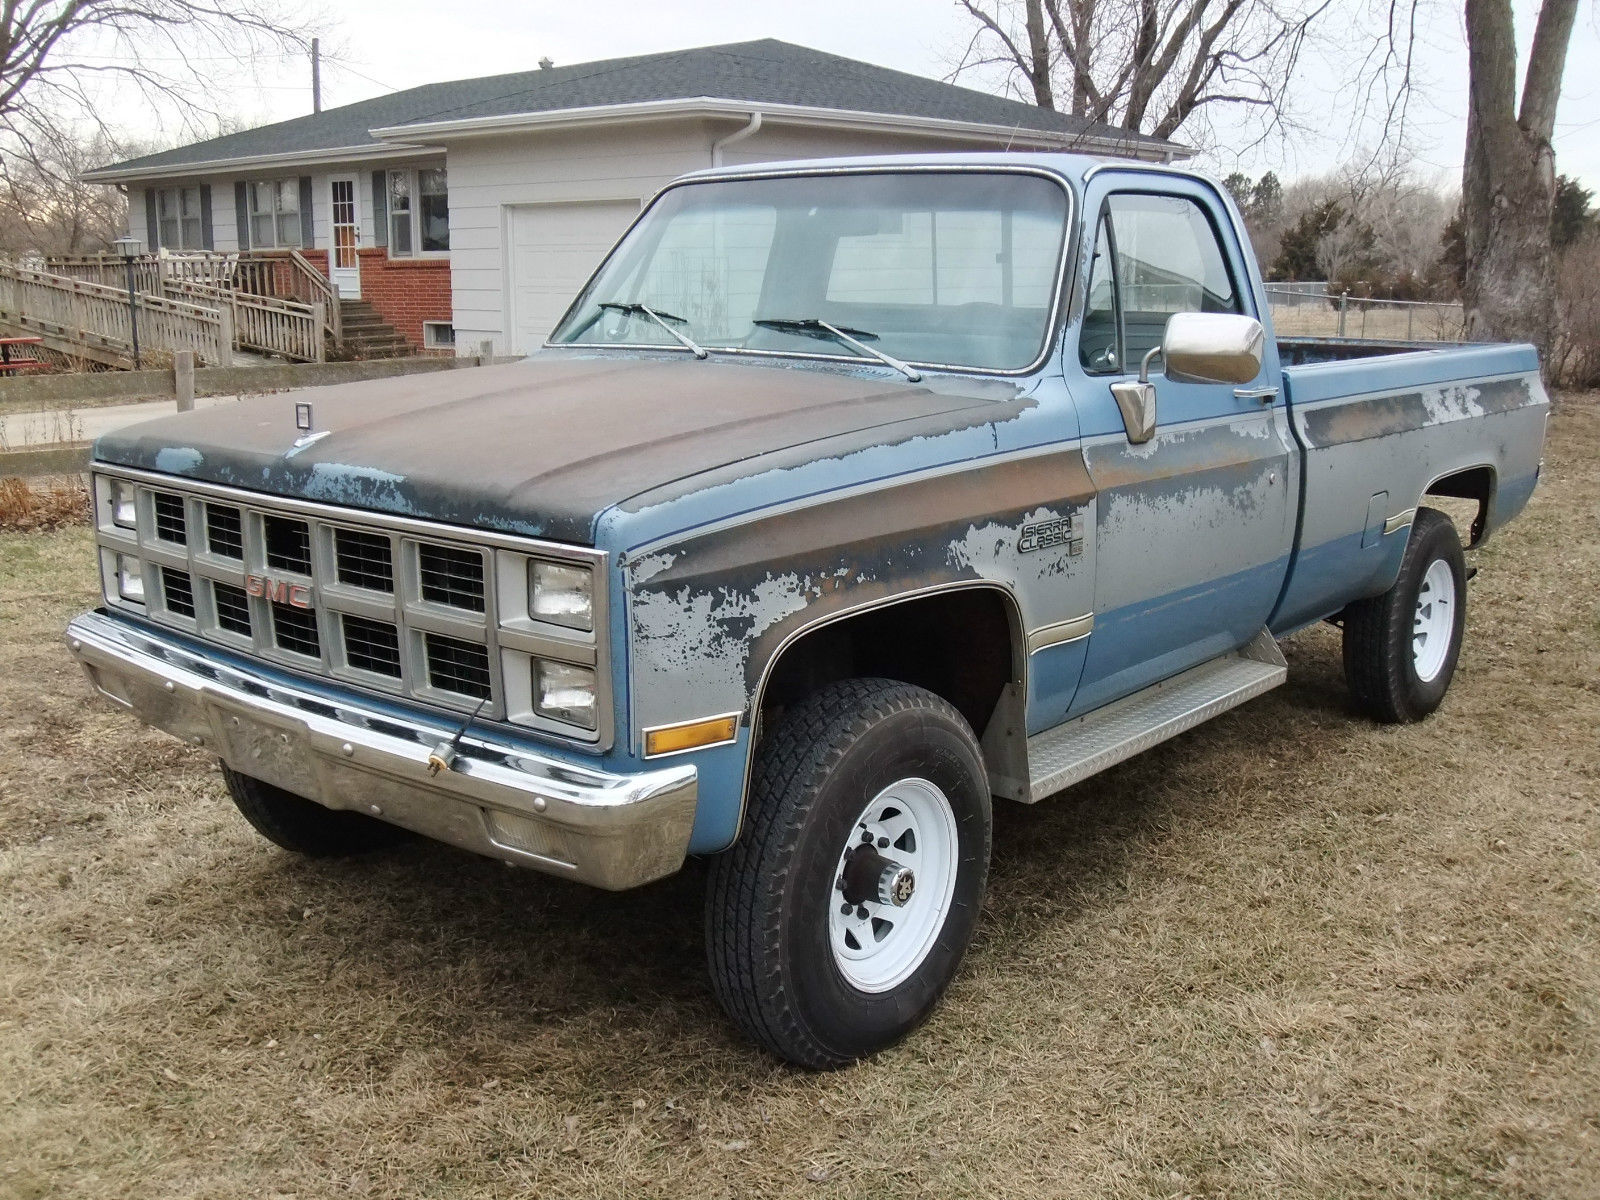 1982 gmc k2500 4x4 6 2l diesel oem paint 99 rustfree. Black Bedroom Furniture Sets. Home Design Ideas